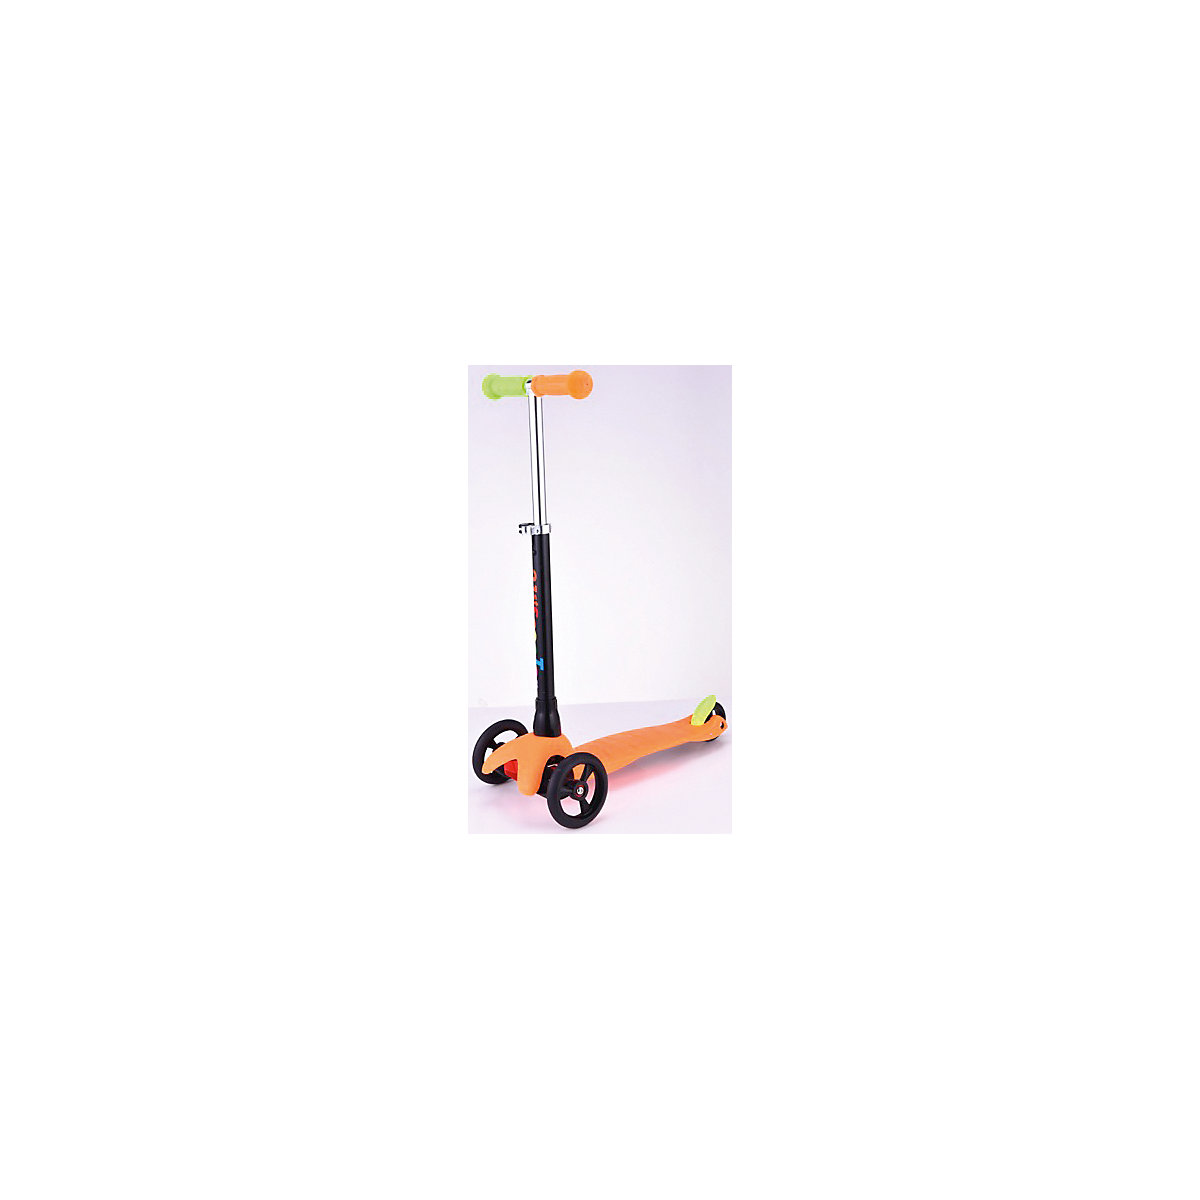 BUGGY BOOM Kick Scooters,Foot Scooters 8074965 scooter three-wheeled for children boys and girls